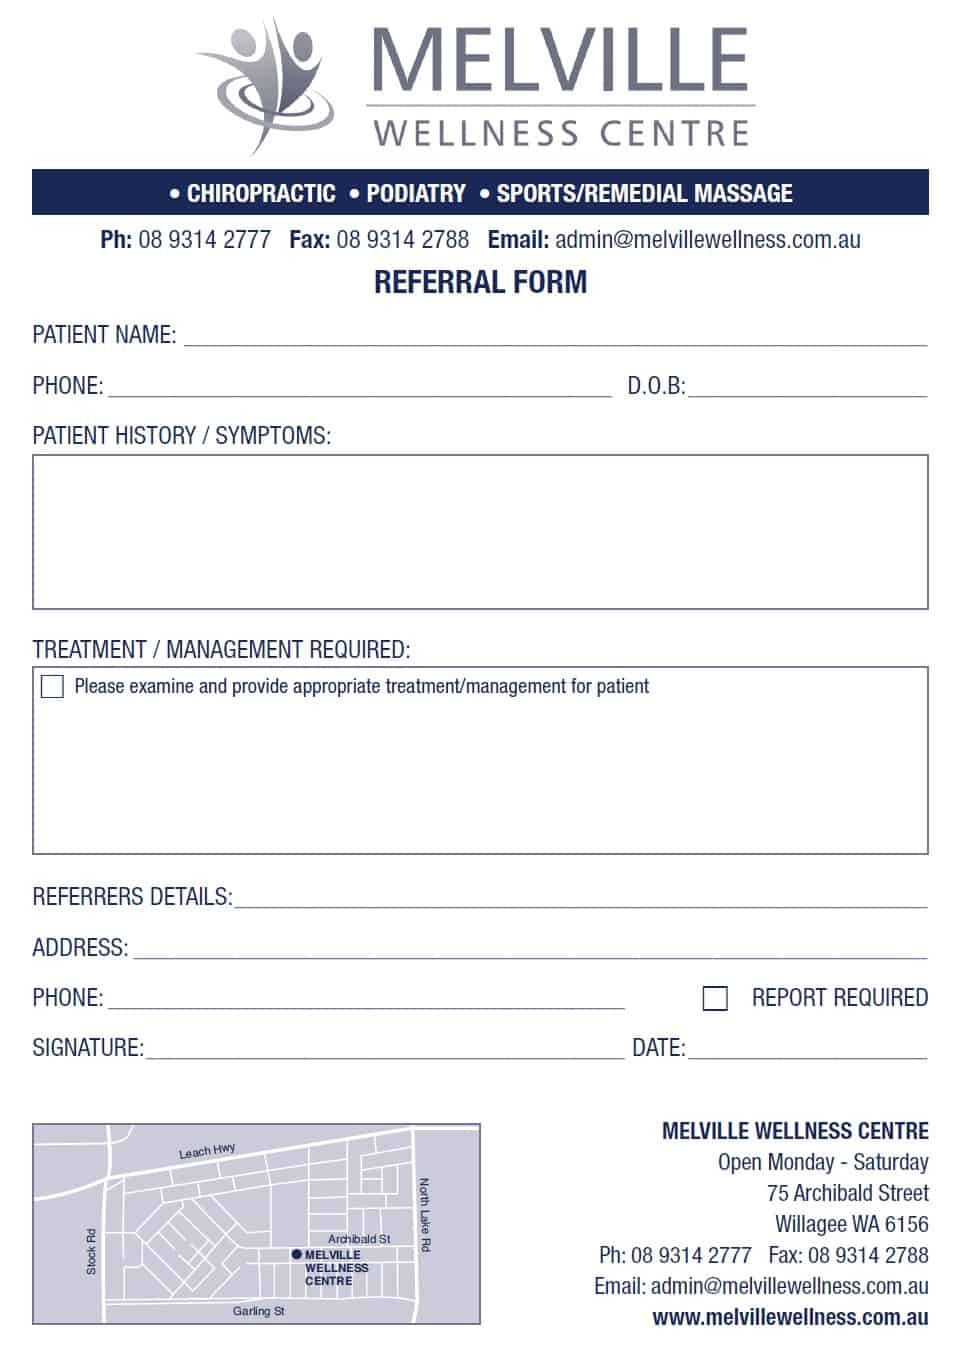 Melville Wellness Centre Referral Slip Form